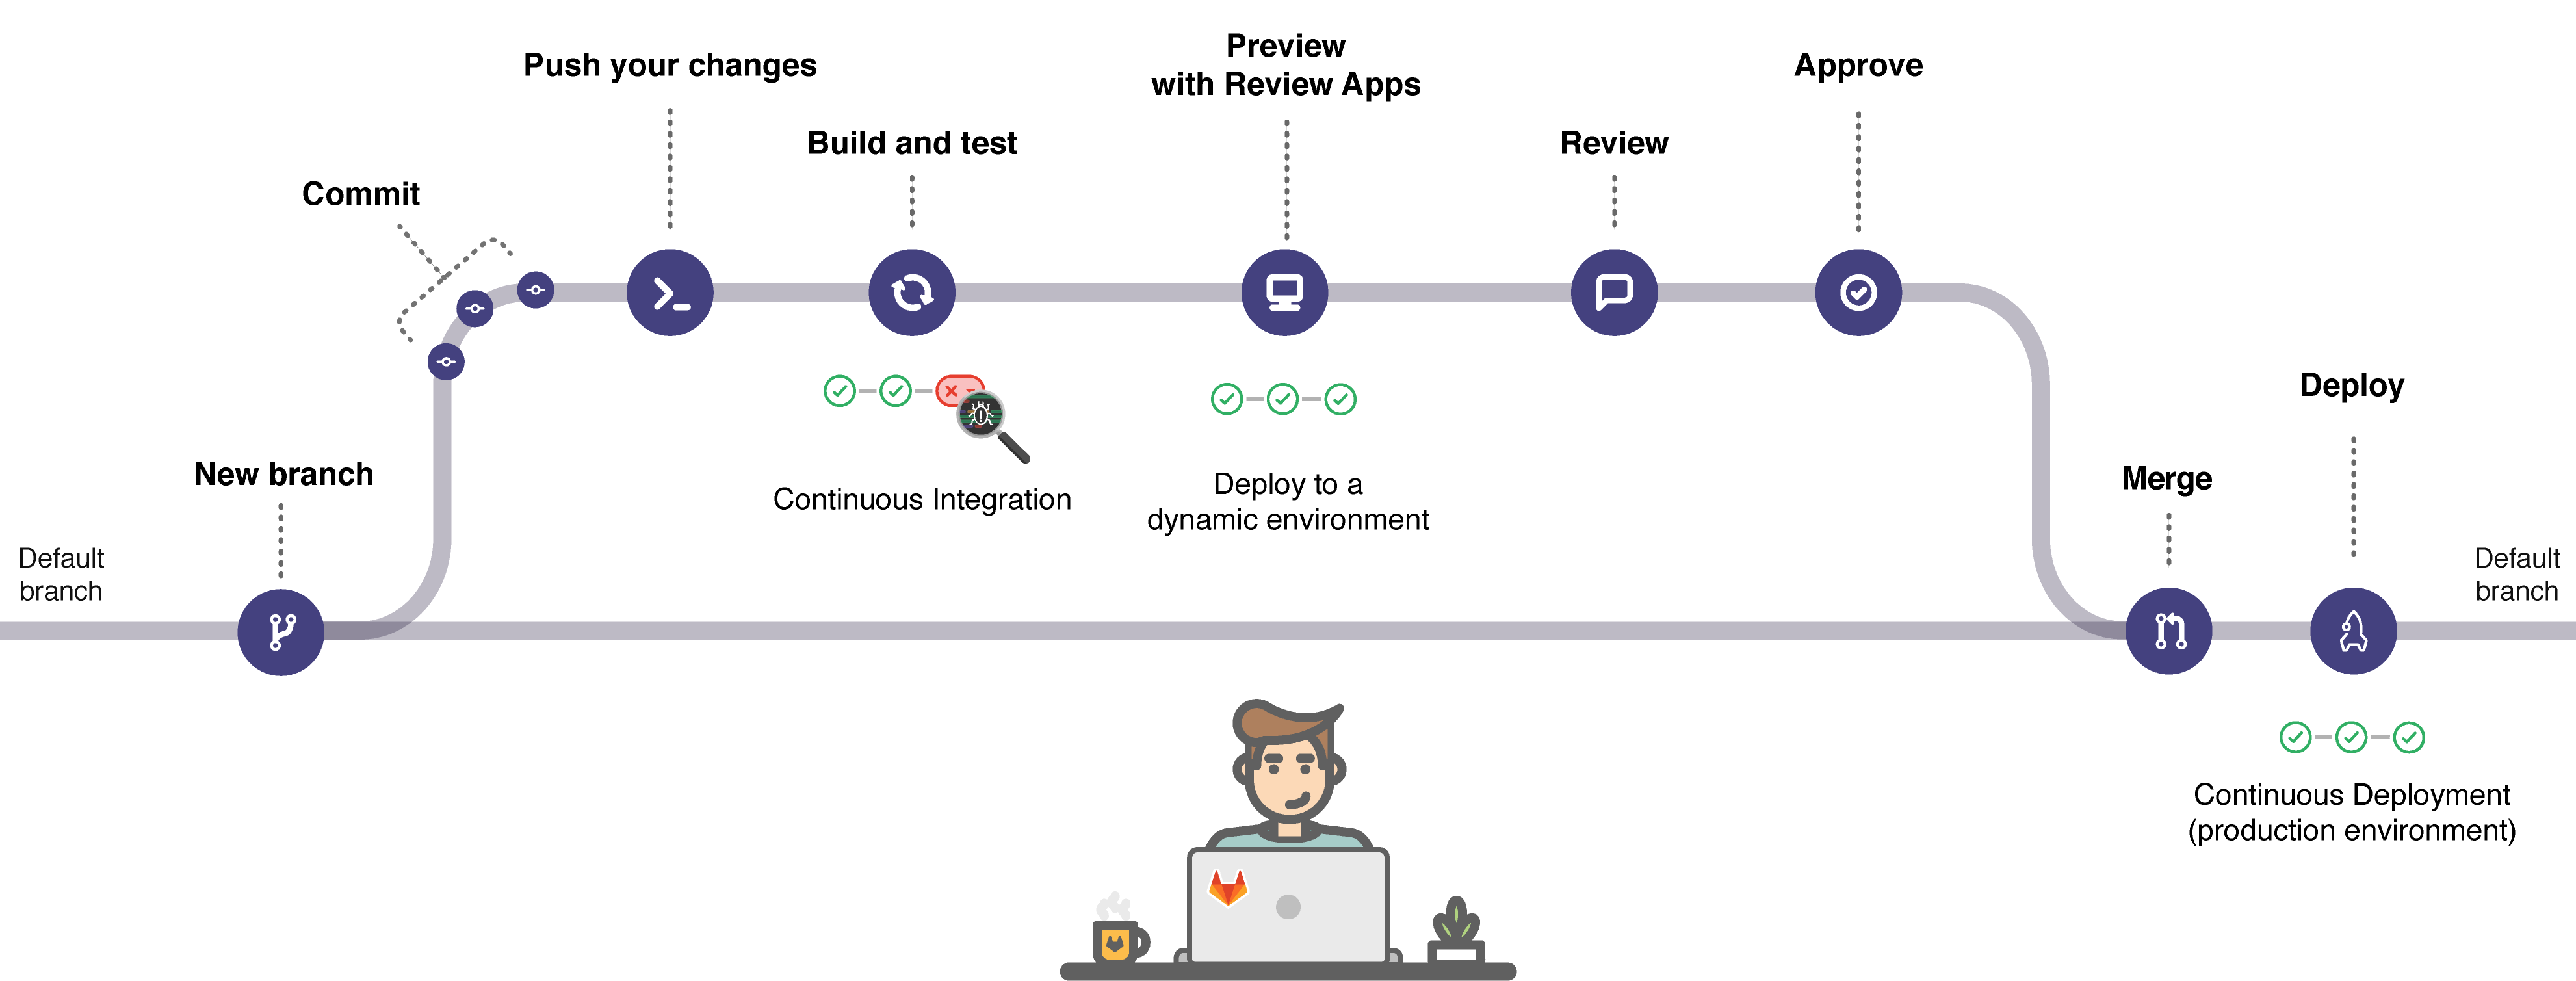 doc/ci/introduction/img/gitlab_workflow_example.png